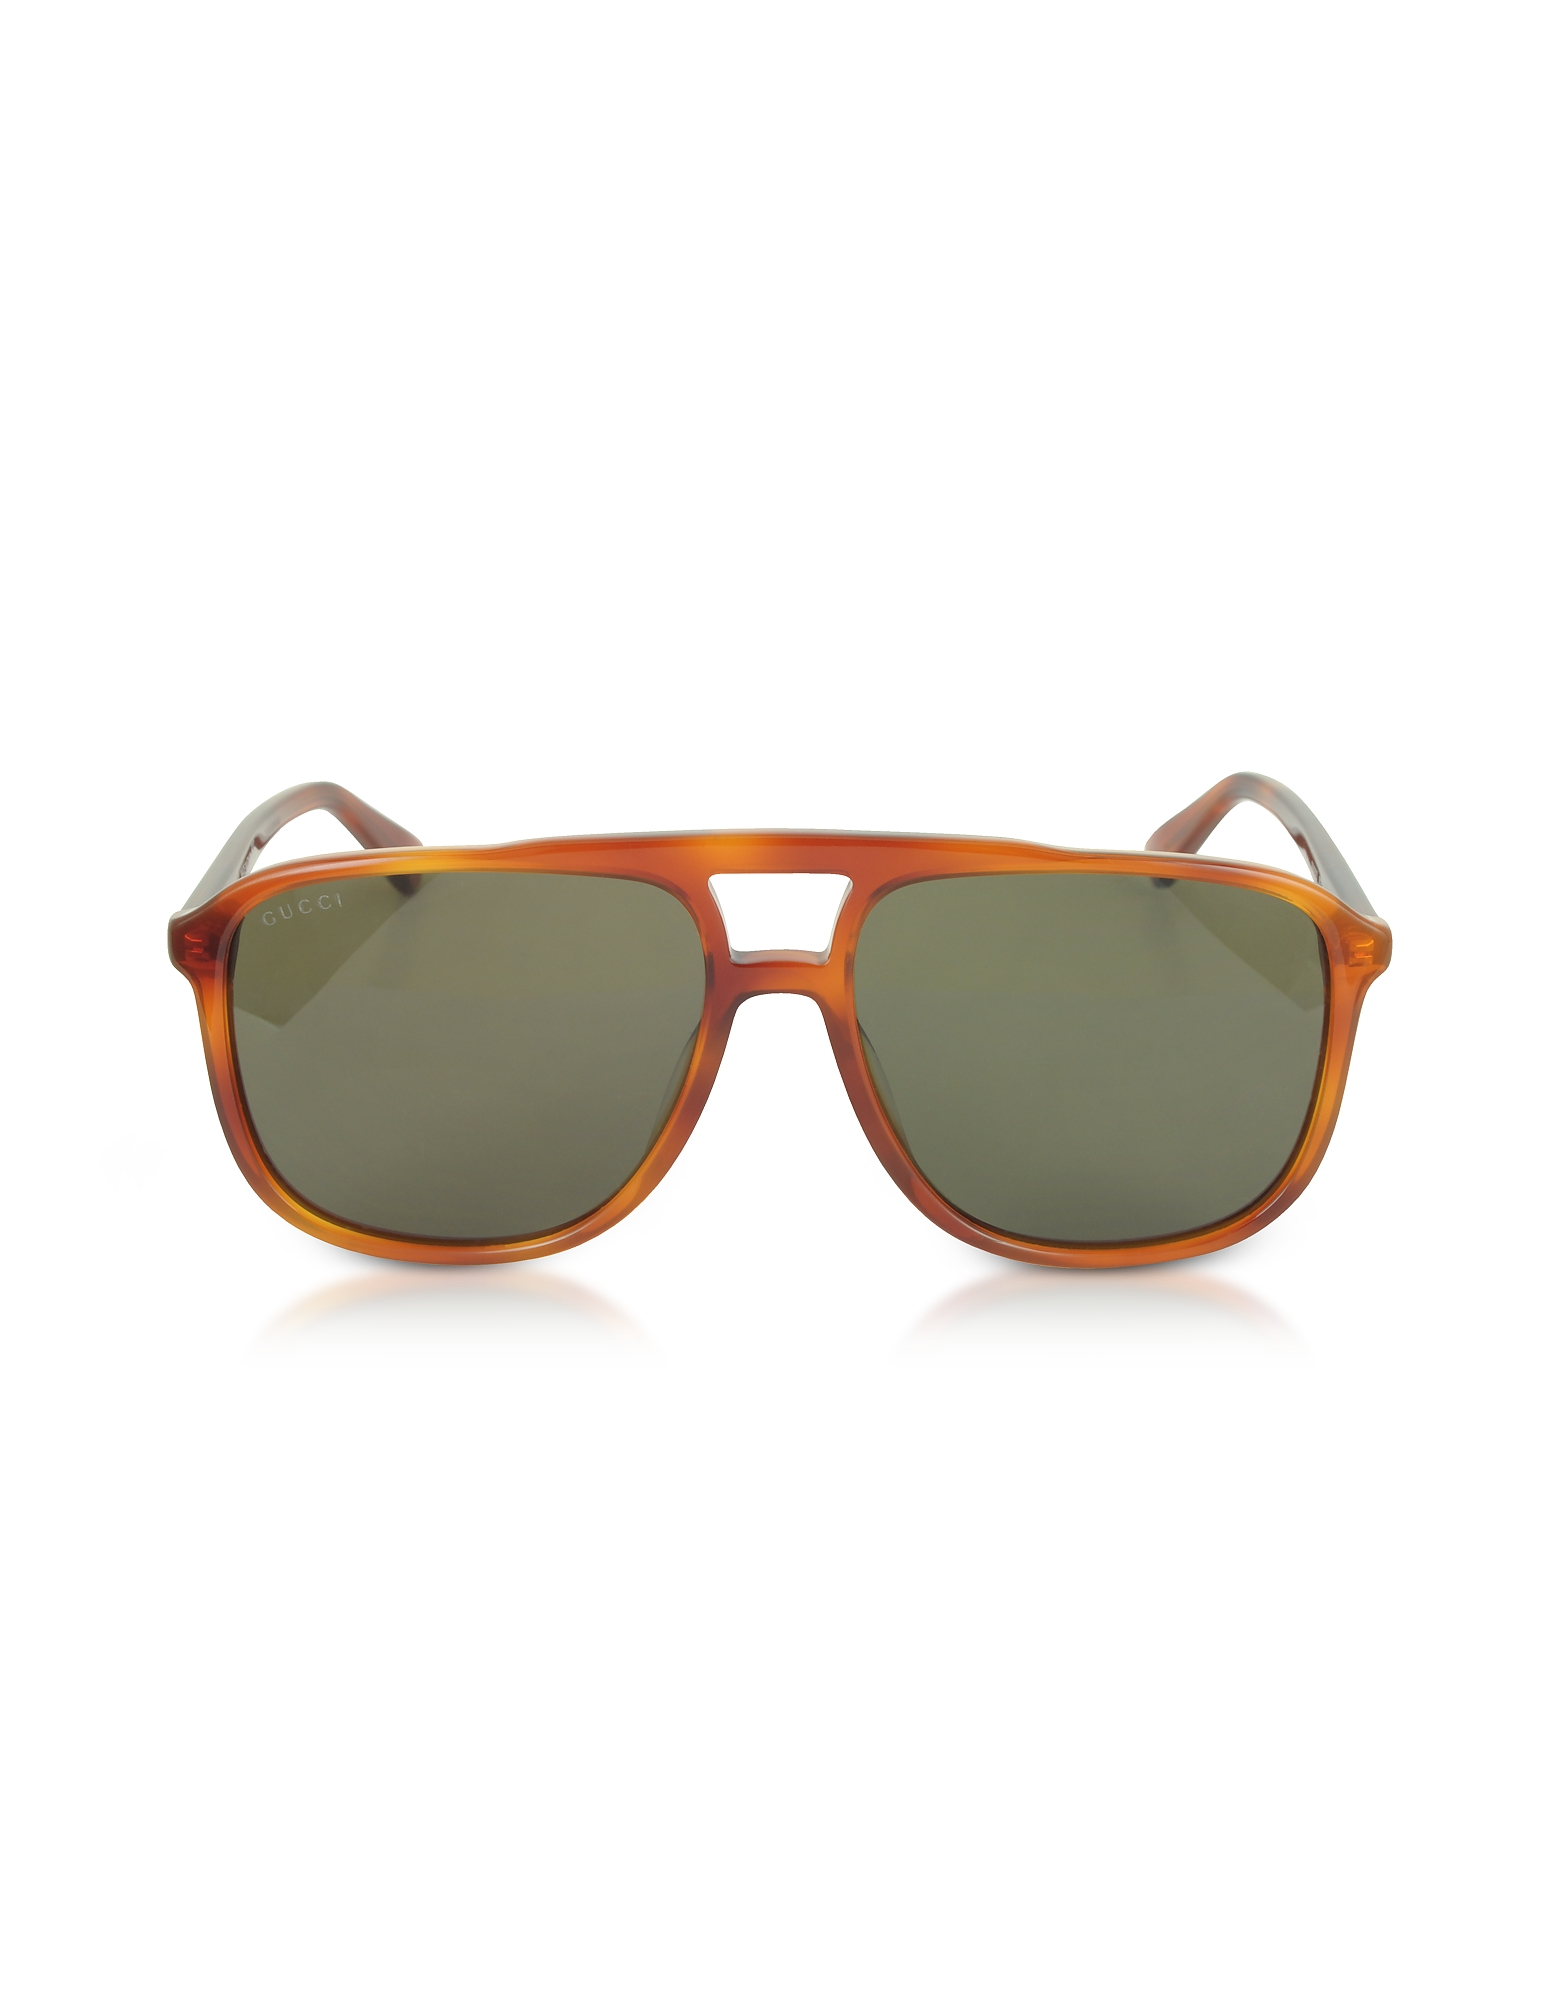 Gucci Designer Sunglasses, GG0262S Rectangular-frame Light Havana Brown Acetate Sunglasses